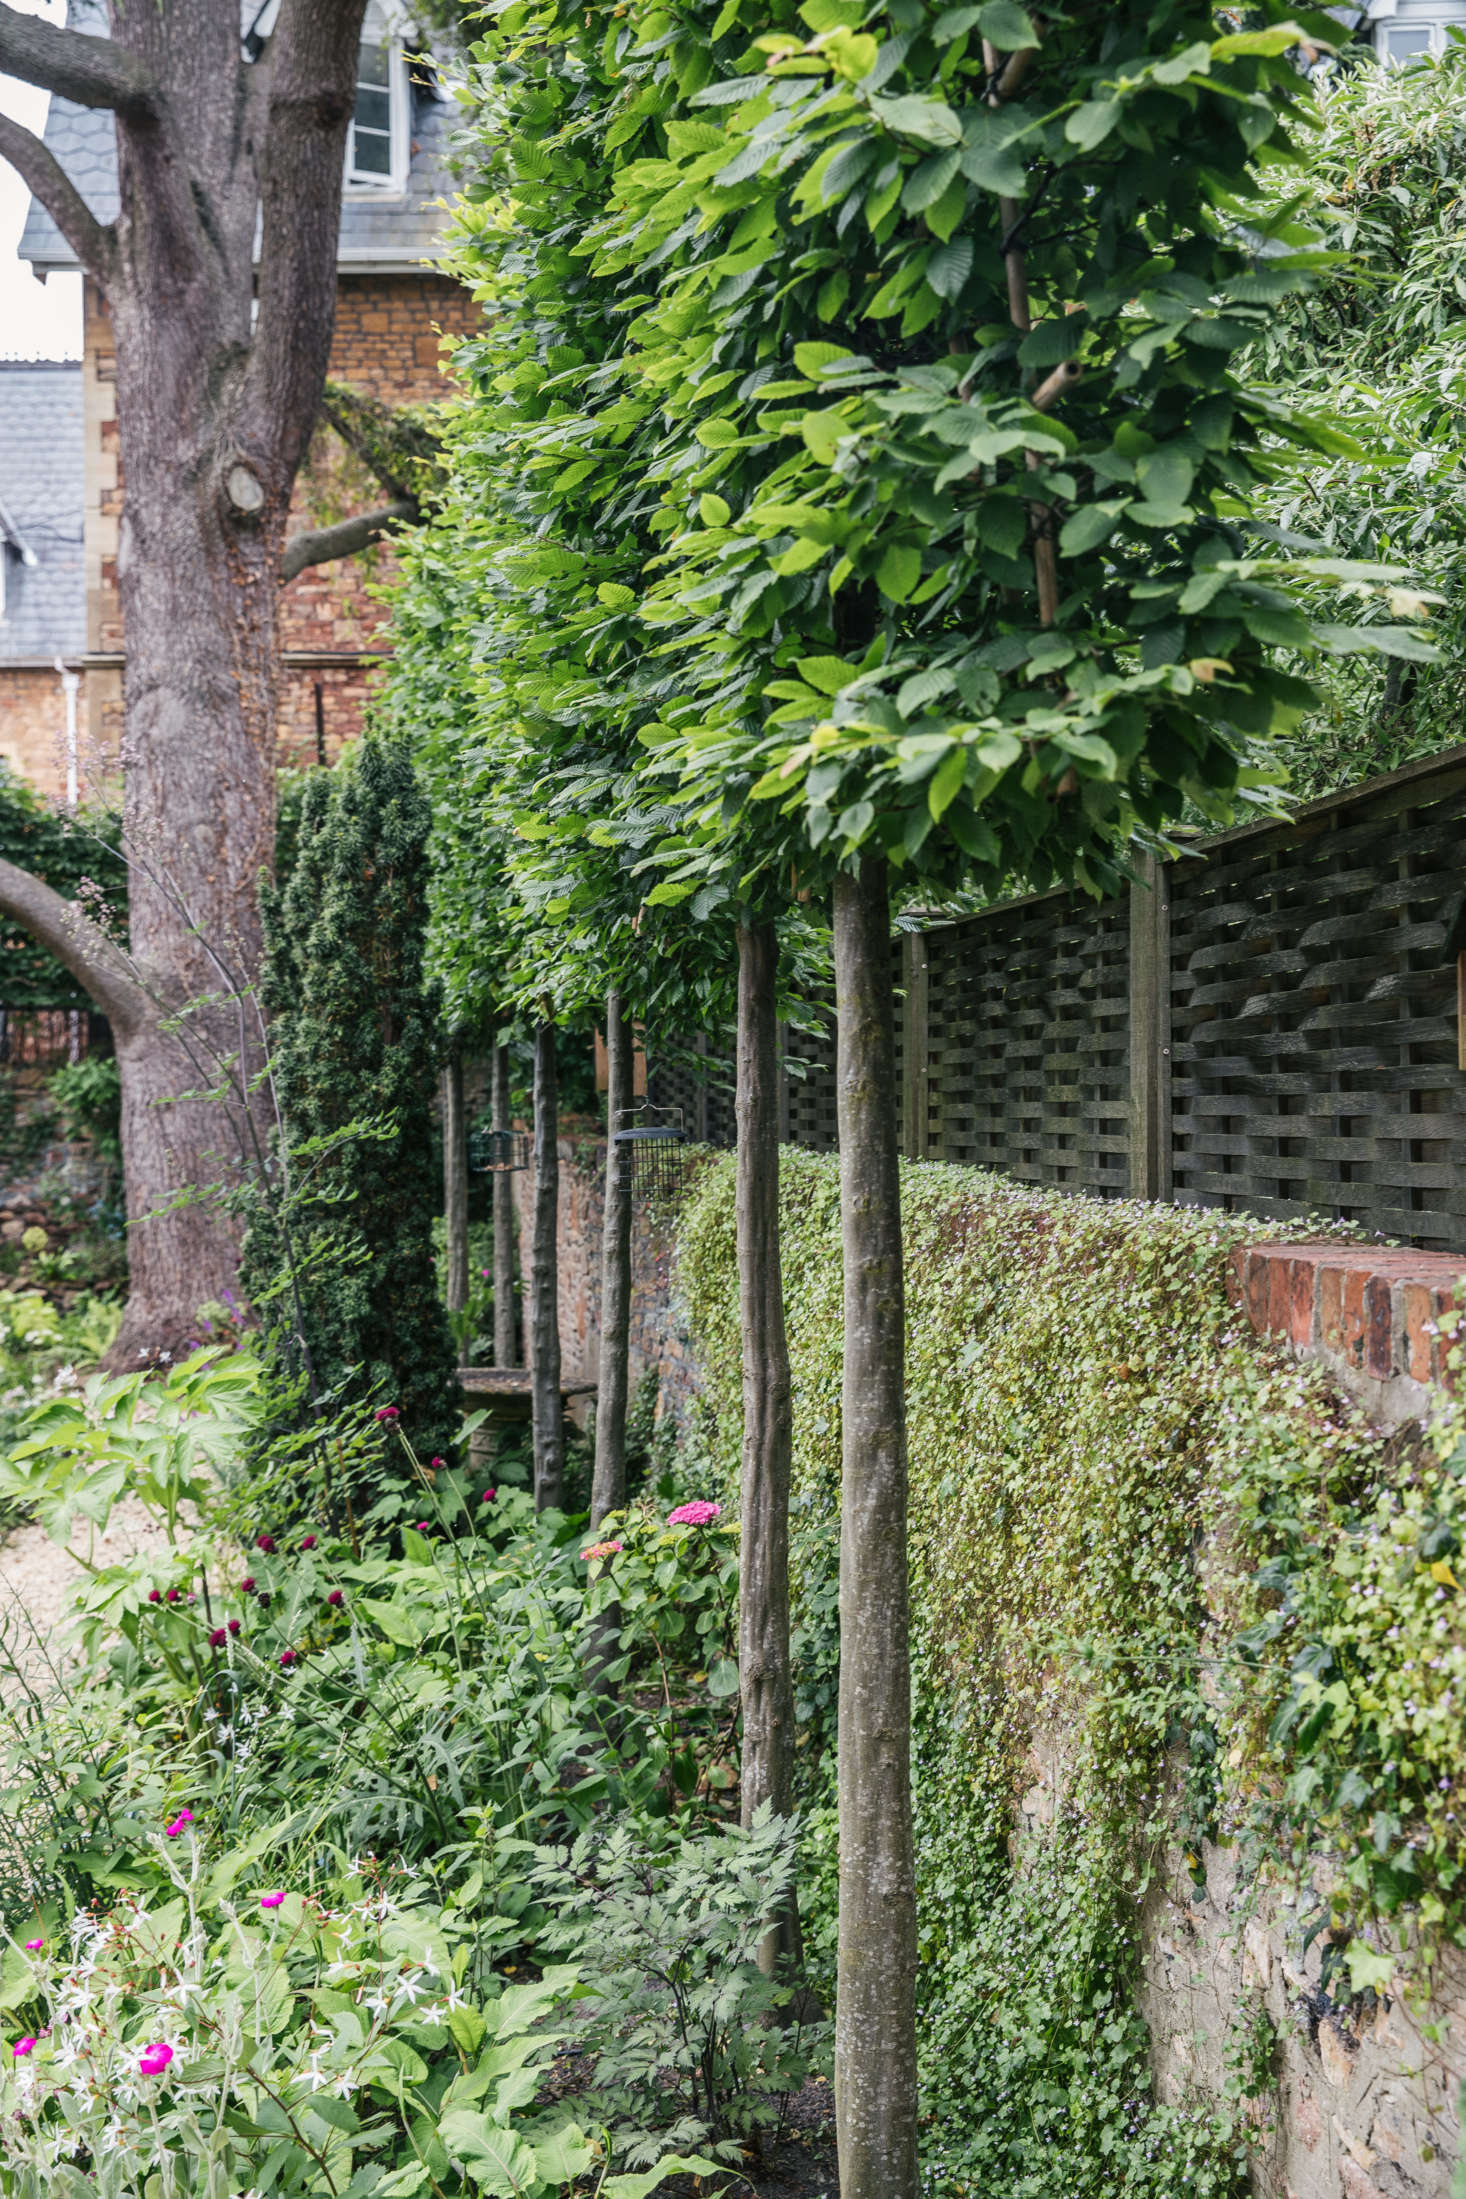 A row of pleached hornbeam trees adds structure to the perimeter.